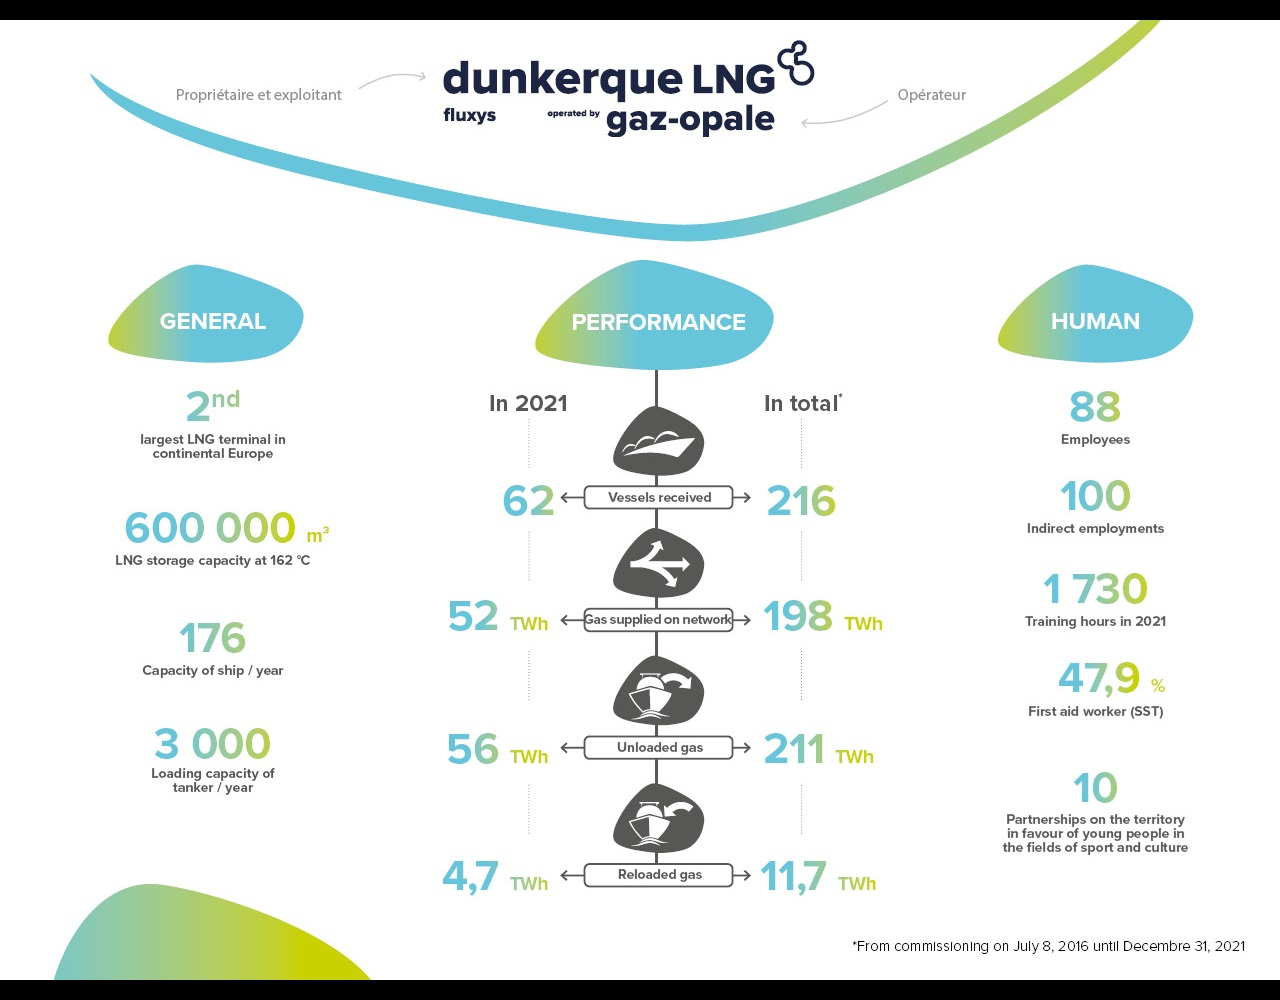 Dunkerque LNG infographic